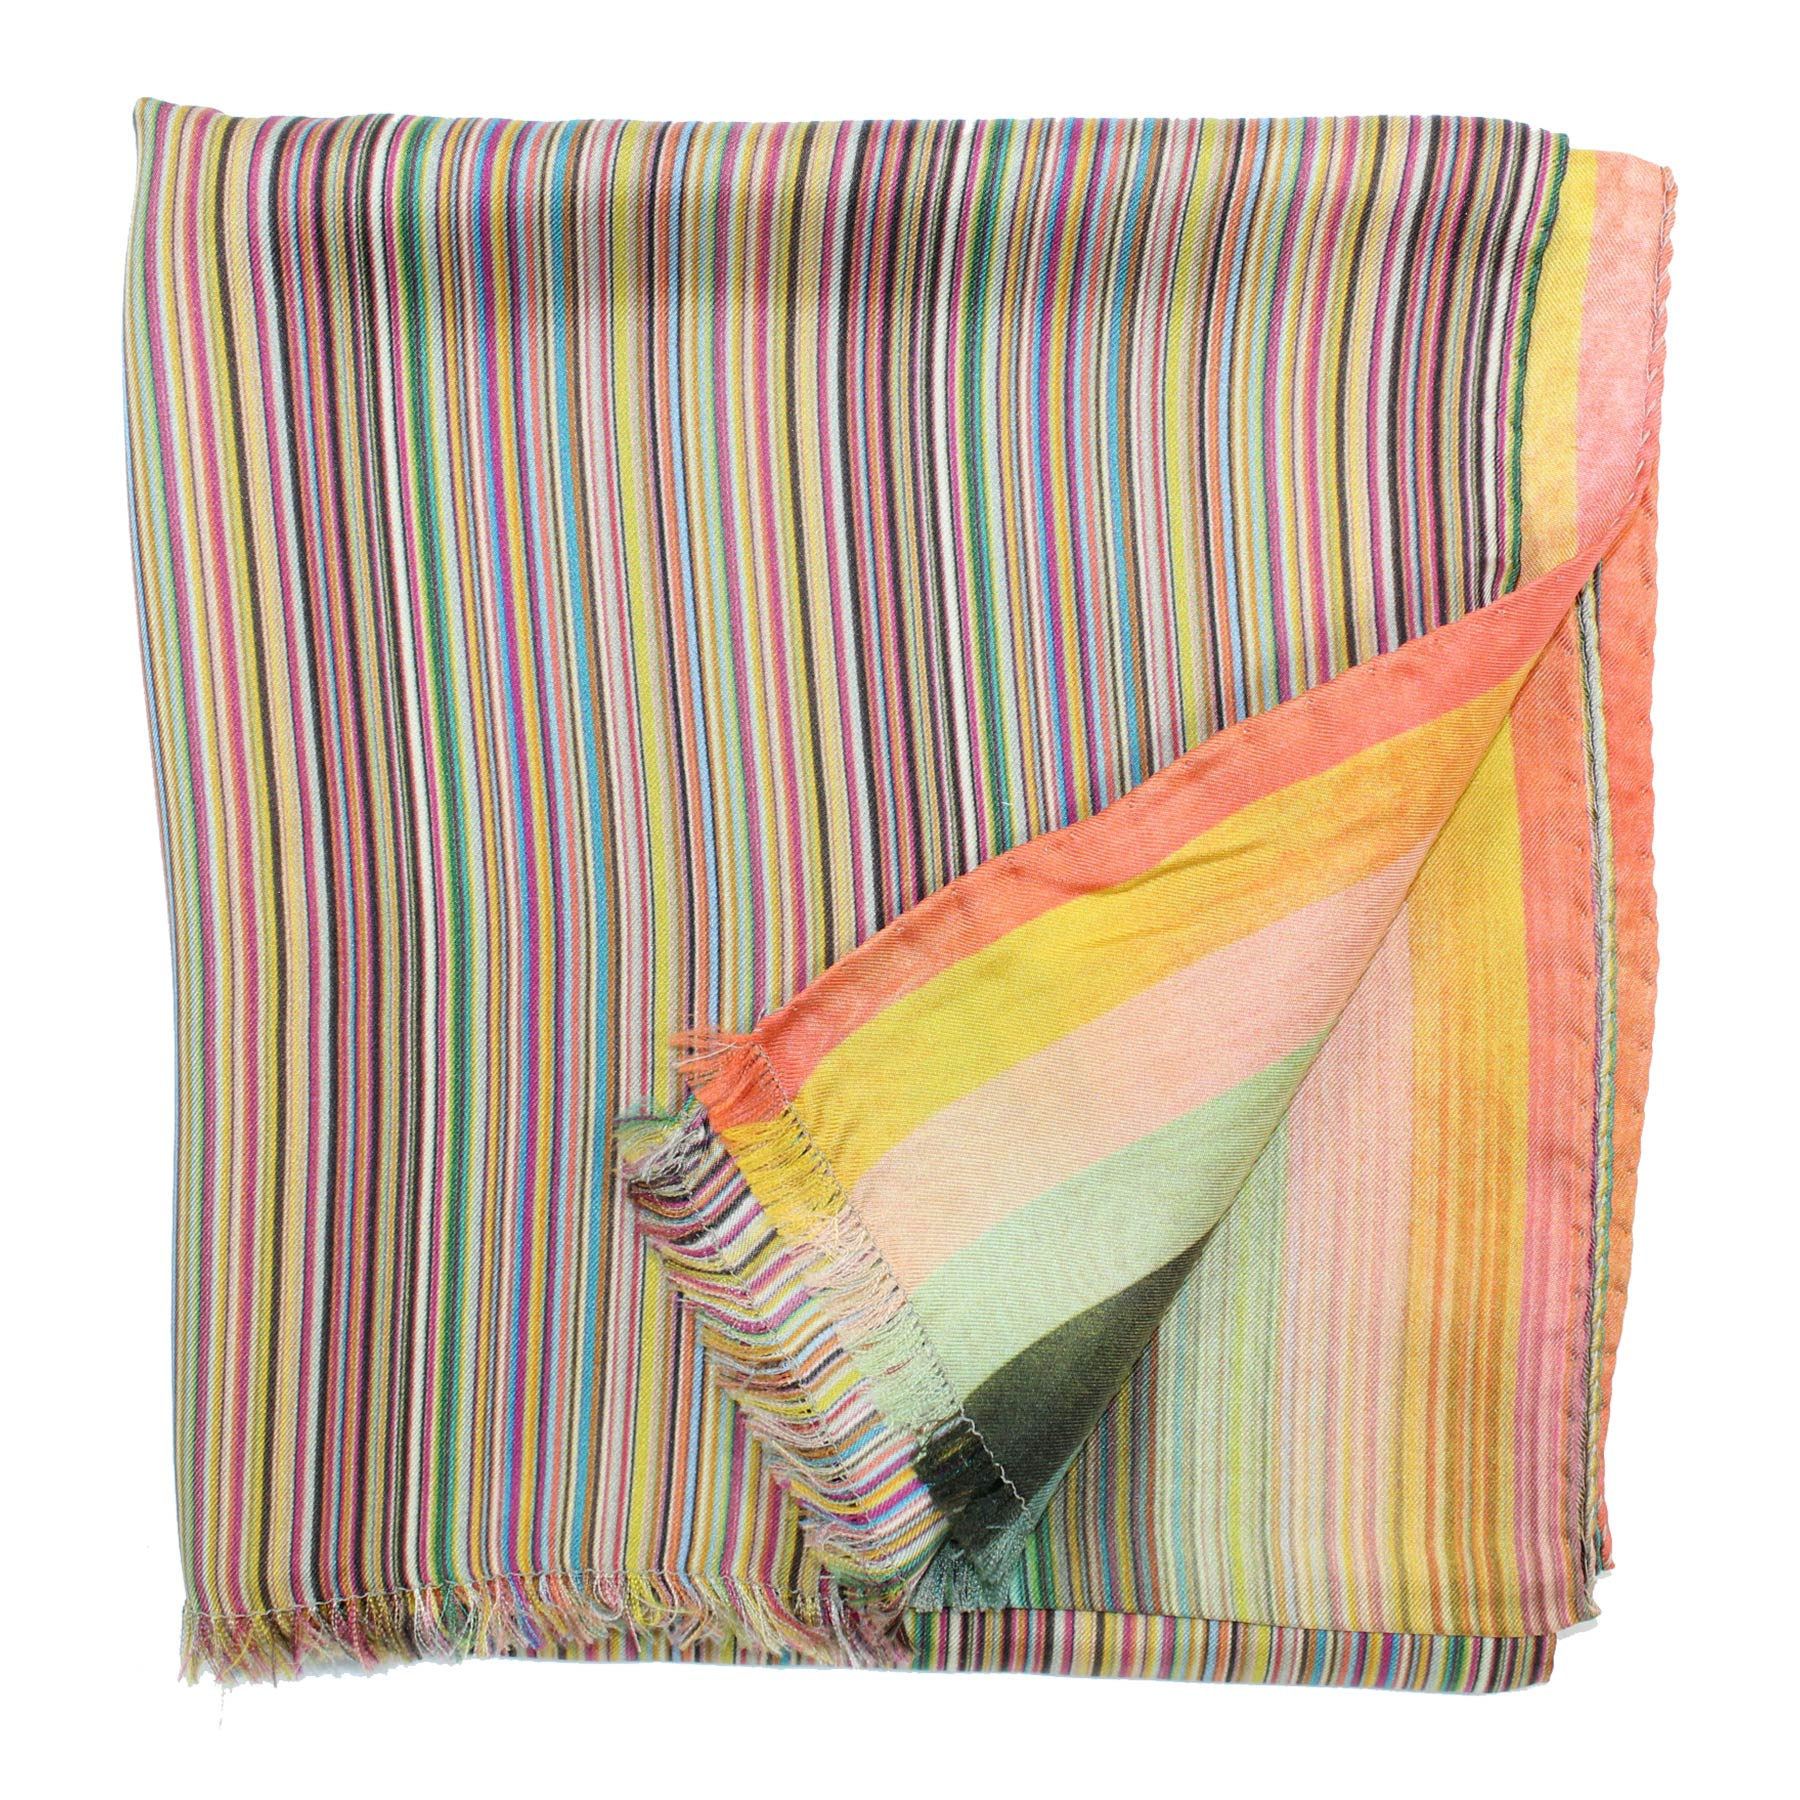 Paul Smith Silk Scarf Colorful Stripes - Women Collection